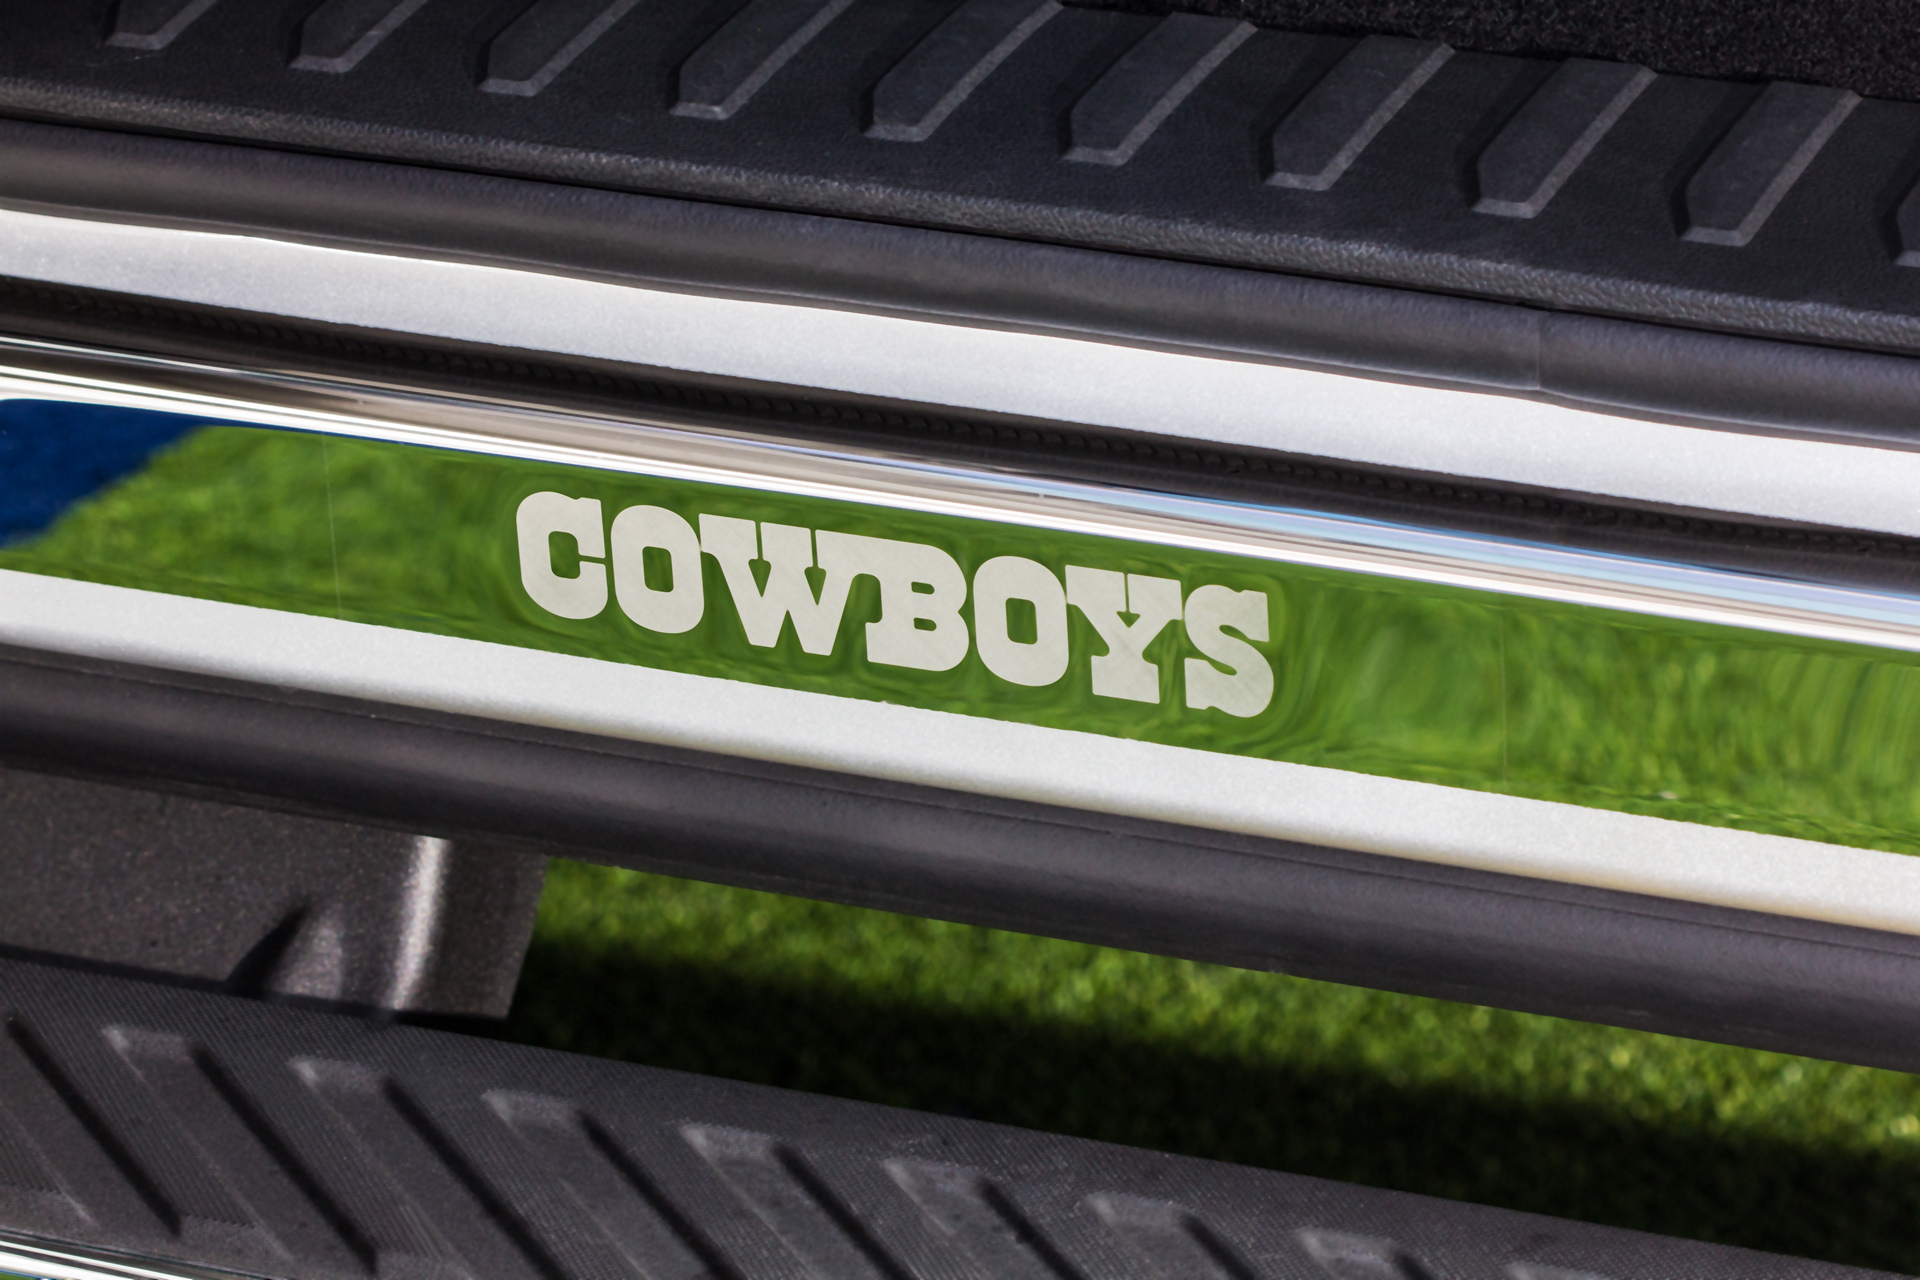 Ford F-150 Dallas Cowboys Edition © Ford Motor Company